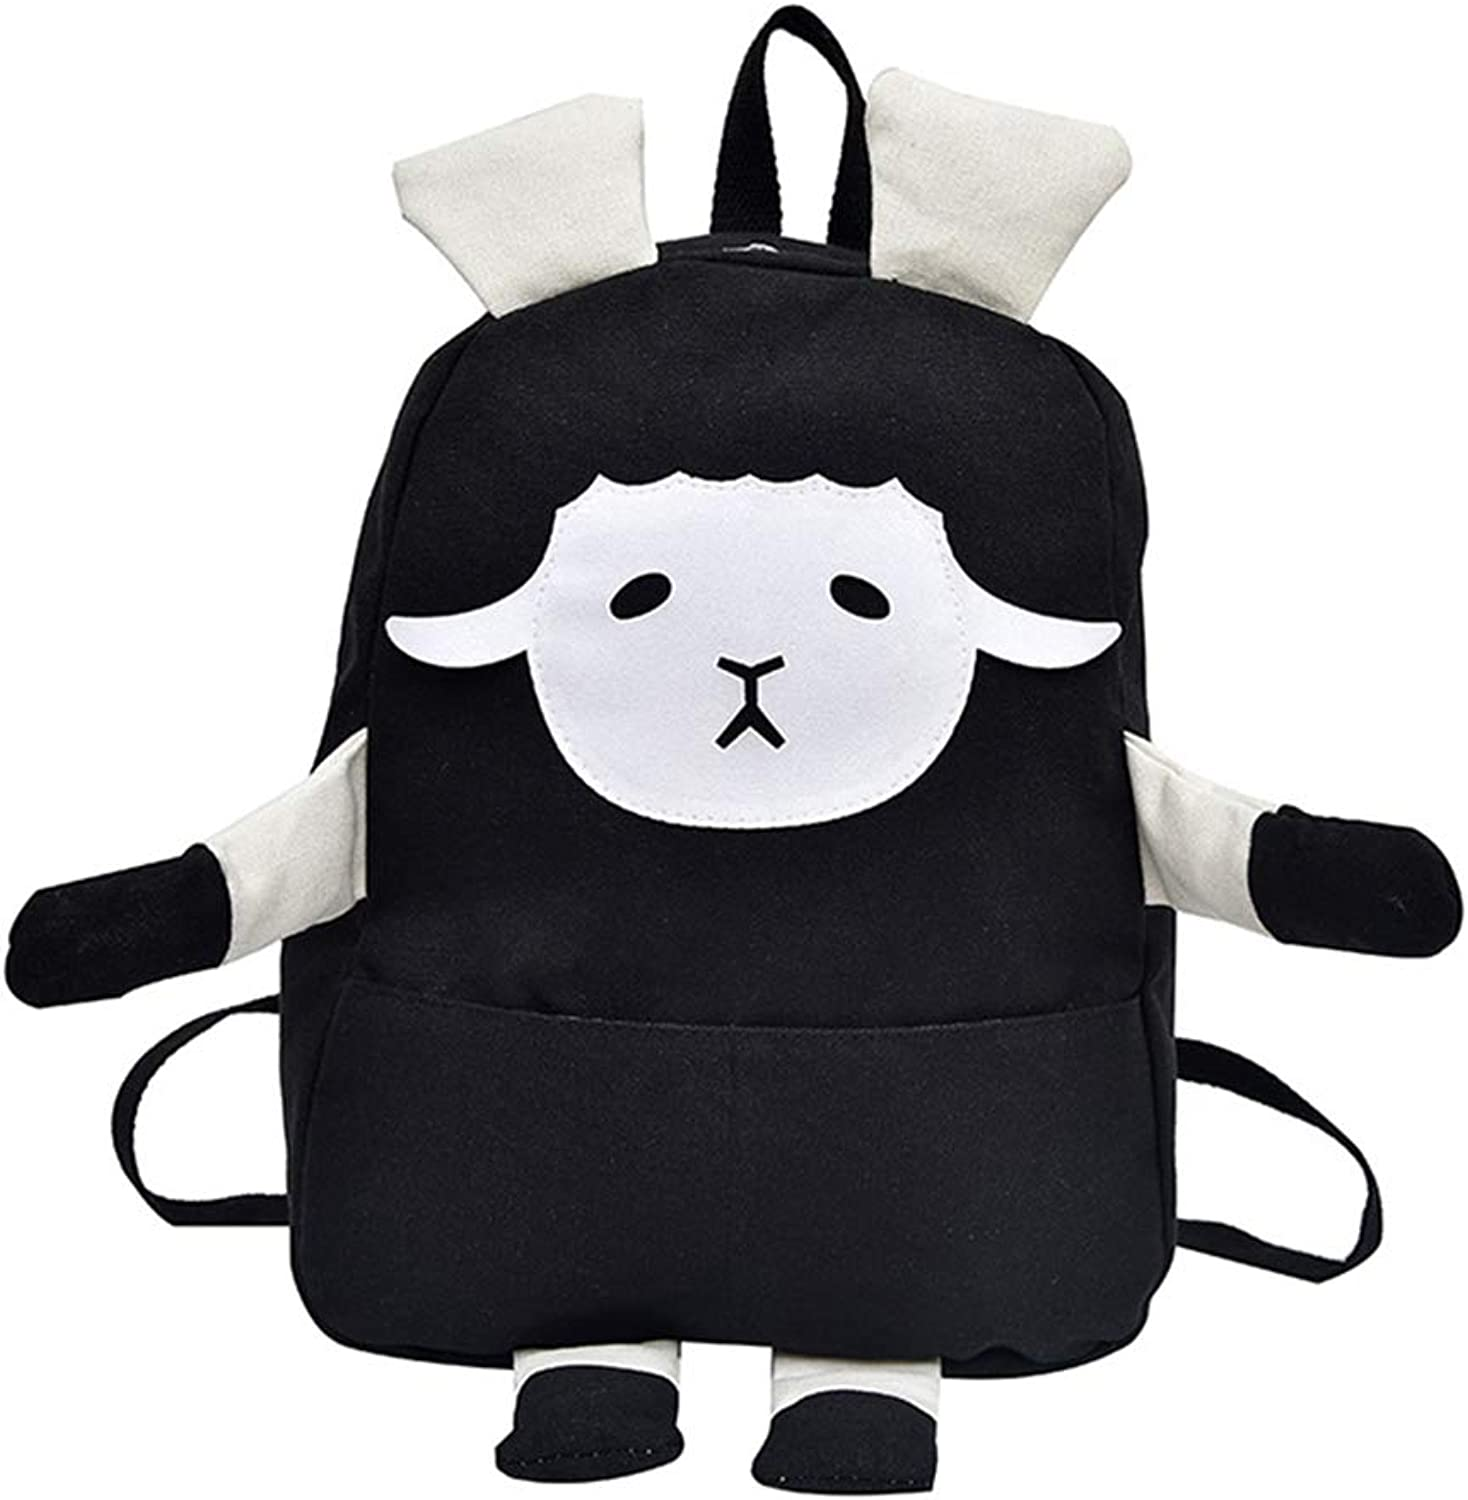 Women's School Bag Soft Sister high School Students Wild Simple Canvas Backpack Small Goats to go Out to Learn a New and Beautiful Practical Bag (Black and White Two colors)